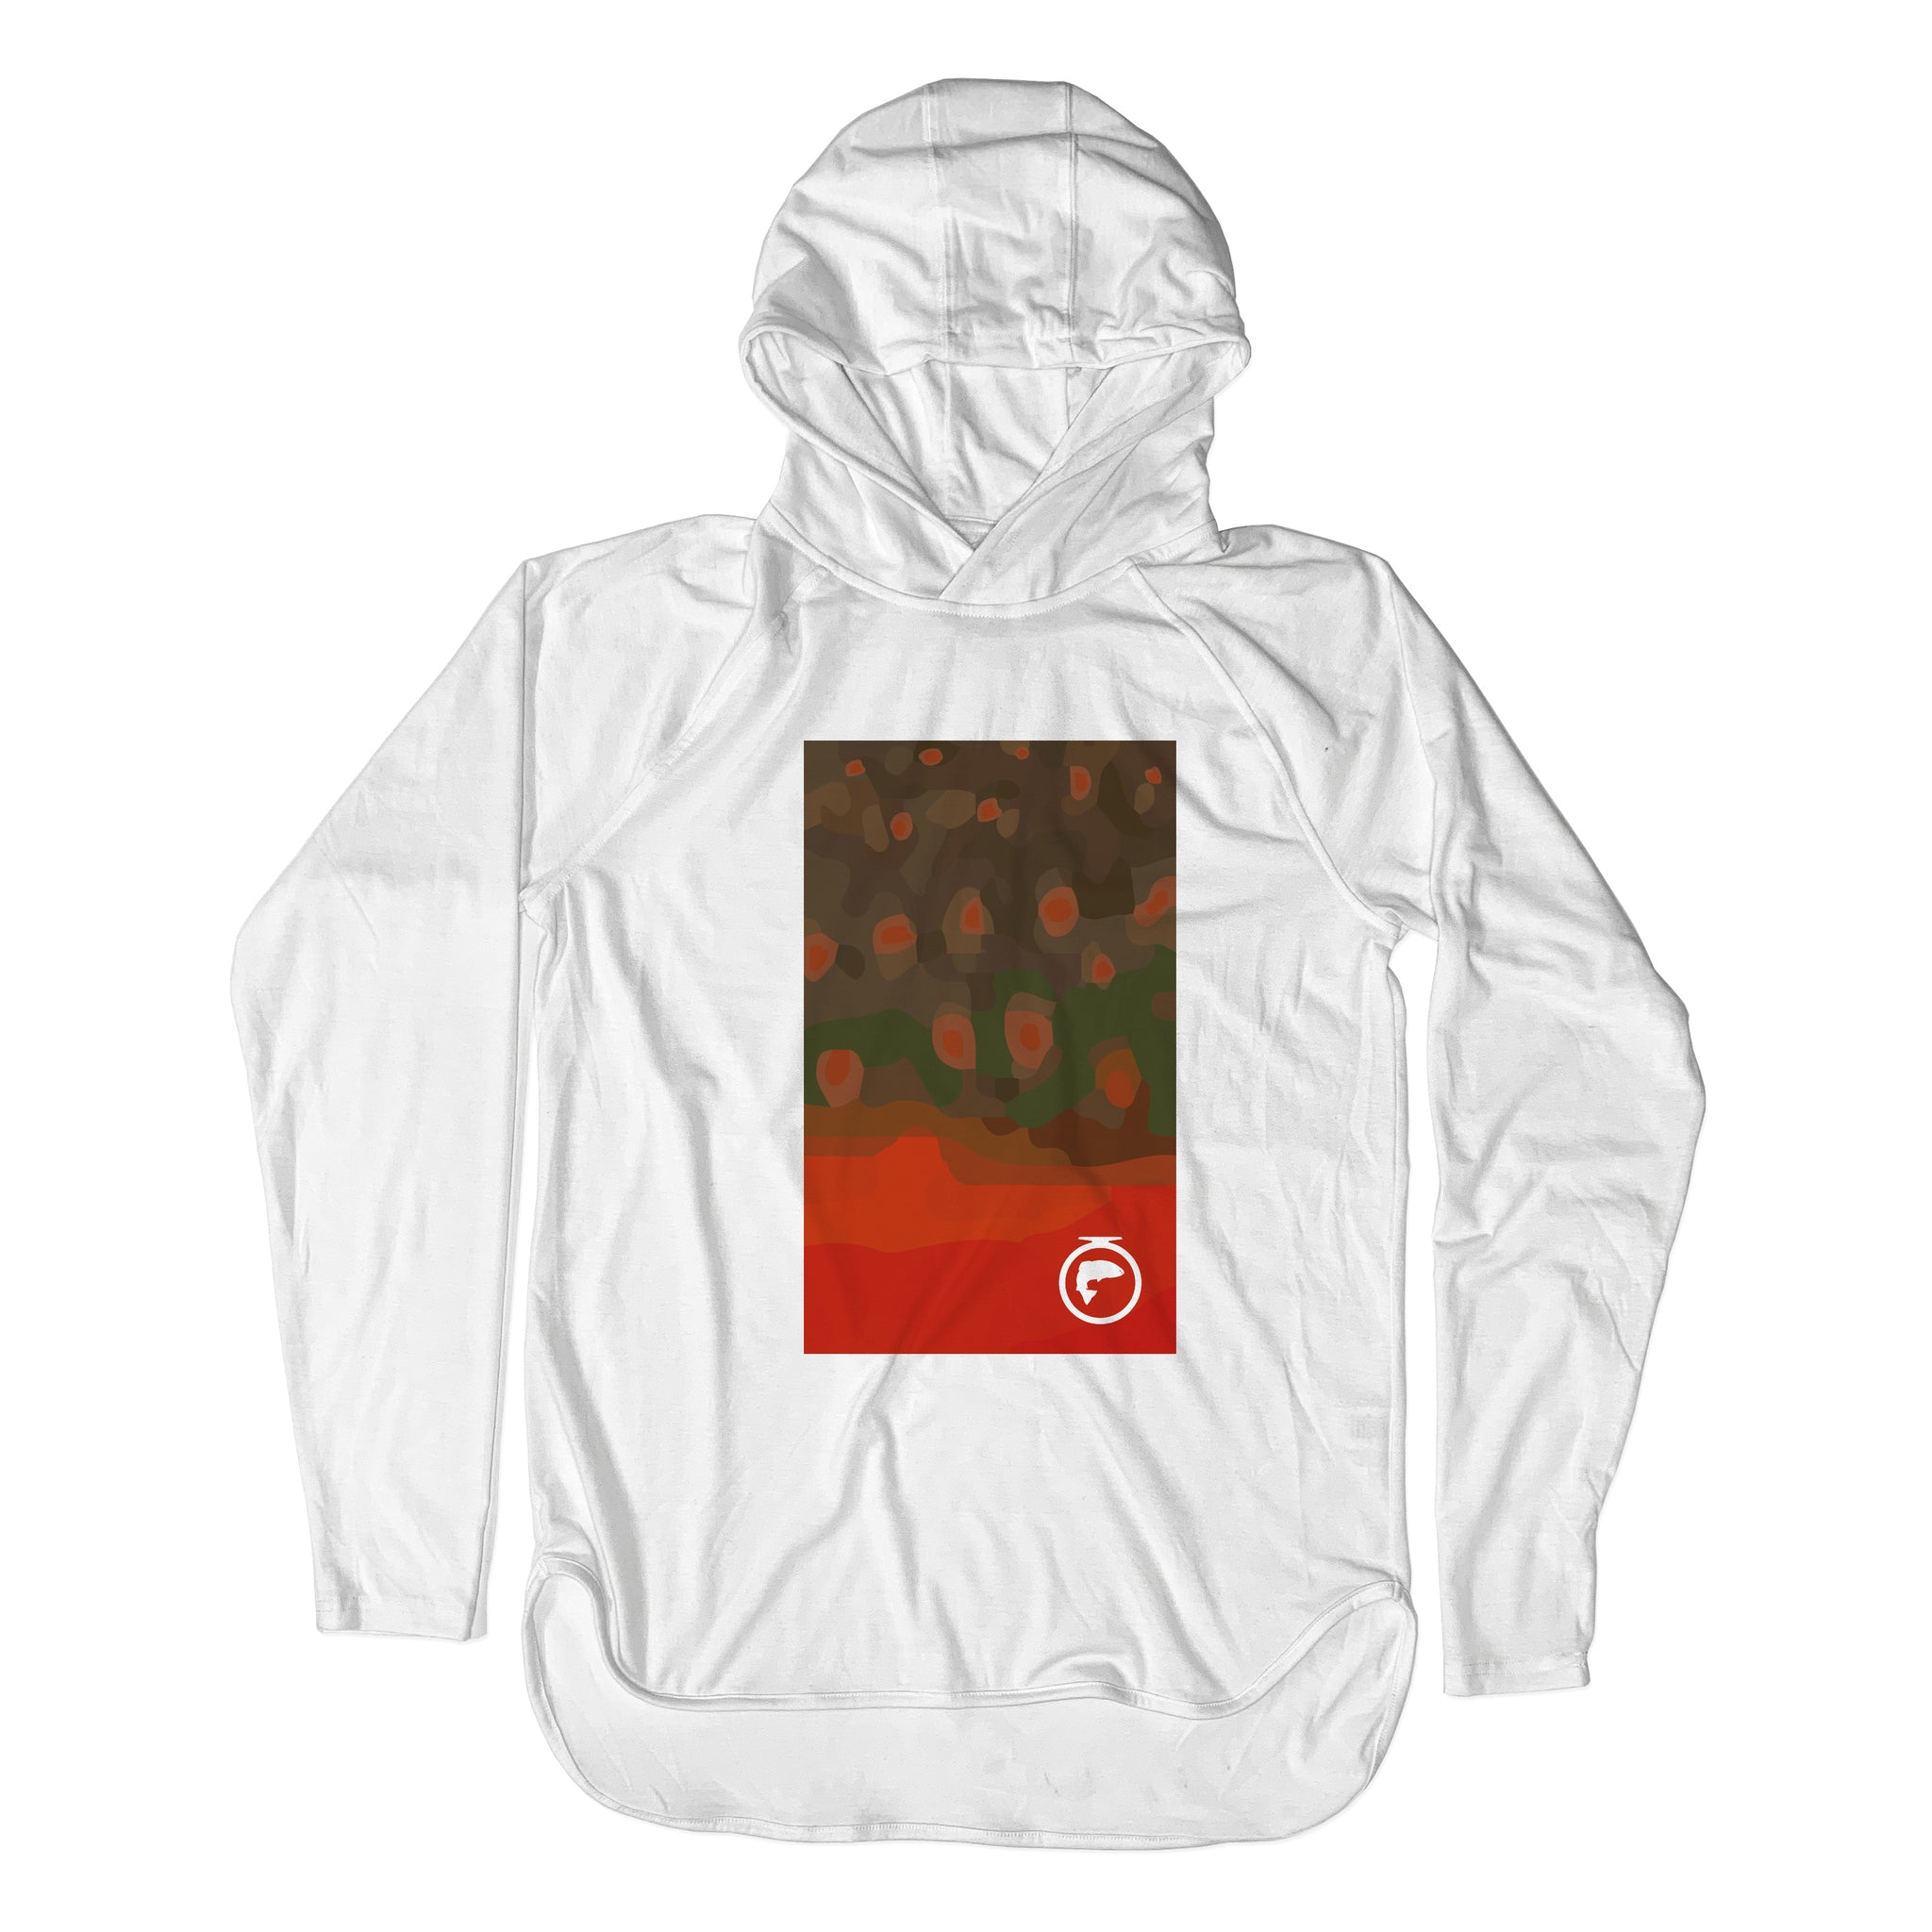 Xtreme Performance Pullover Sun Hoodie - Arctic Char Skin Art - Unisex